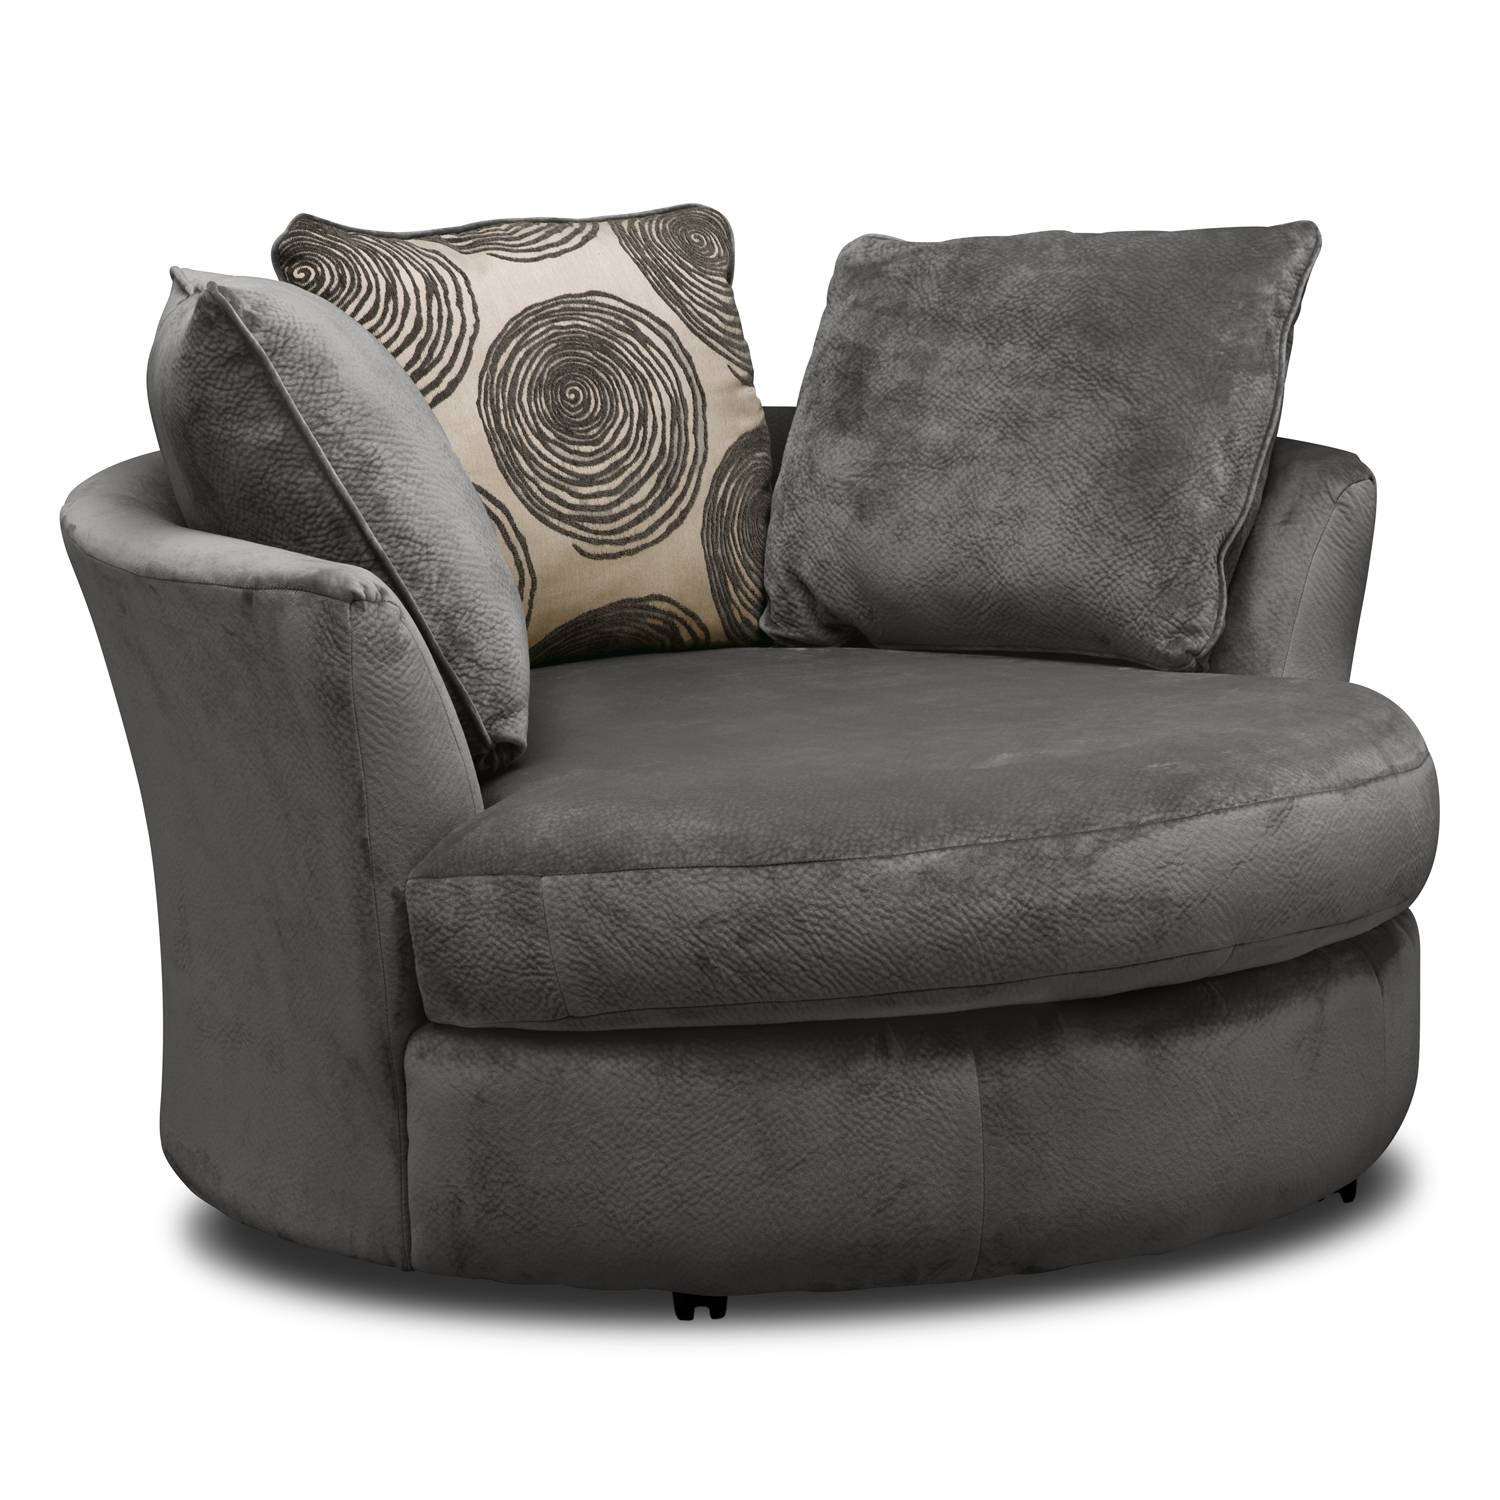 Round Sofa Chair With Regard To Circle Sofa Chairs (View 22 of 30)